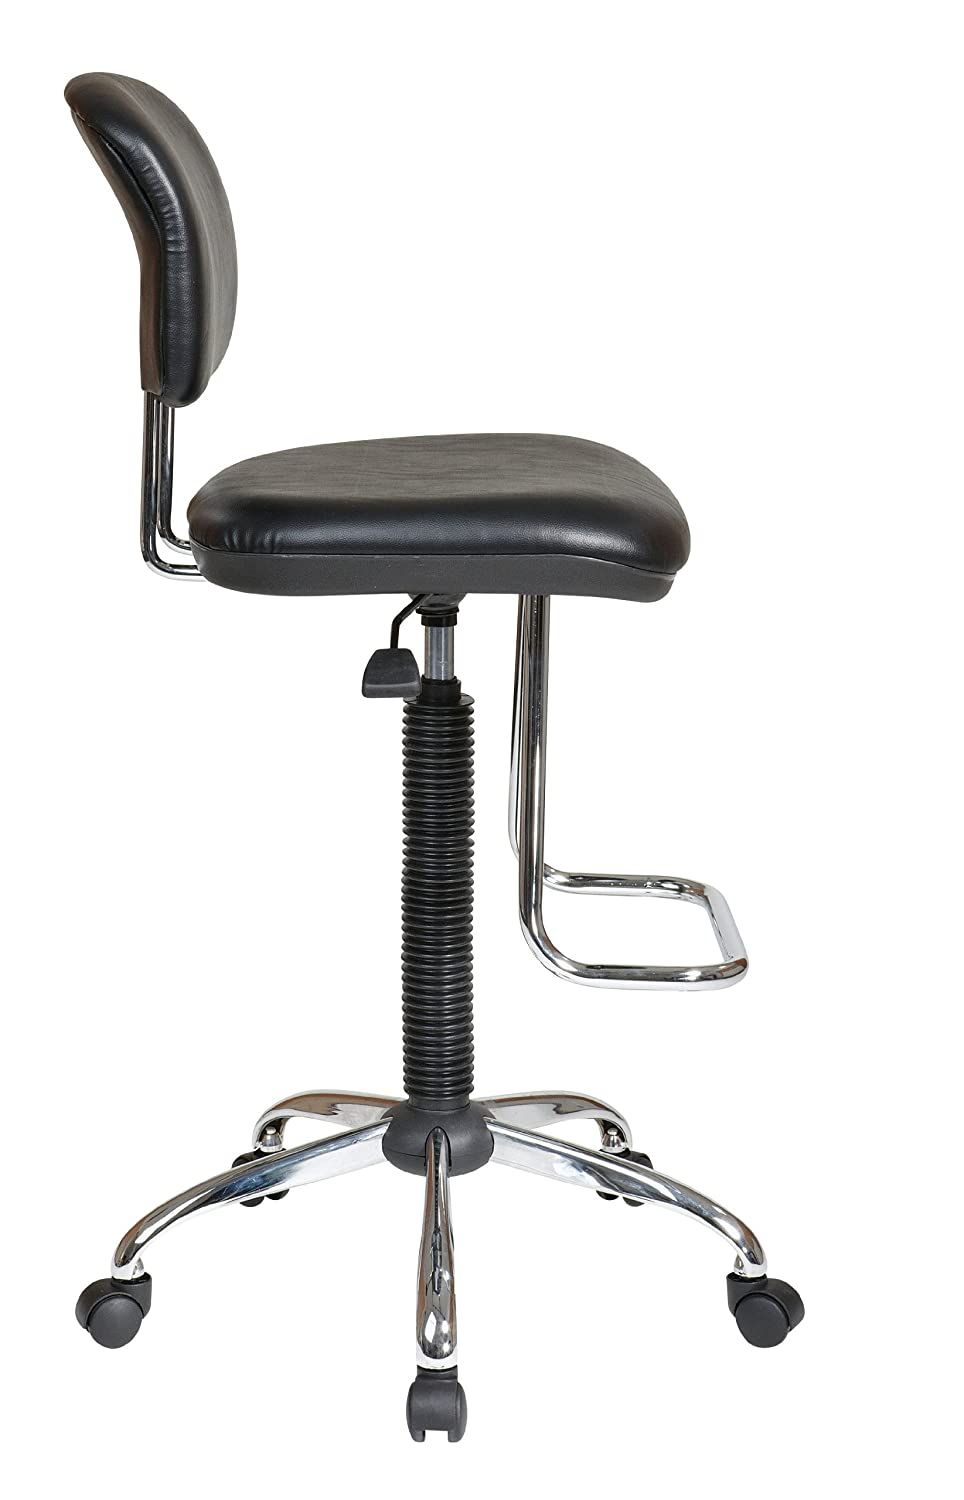 Amazon com  Office Star Pneumatic Drafting Chair with Casters and Chrome  Teardrop Footrest  Vinyl Stool and Back  Kitchen   DiningAmazon com  Office Star Pneumatic Drafting Chair with Casters and  . Office Star Height Adjustable Drafting Chair With Footring. Home Design Ideas